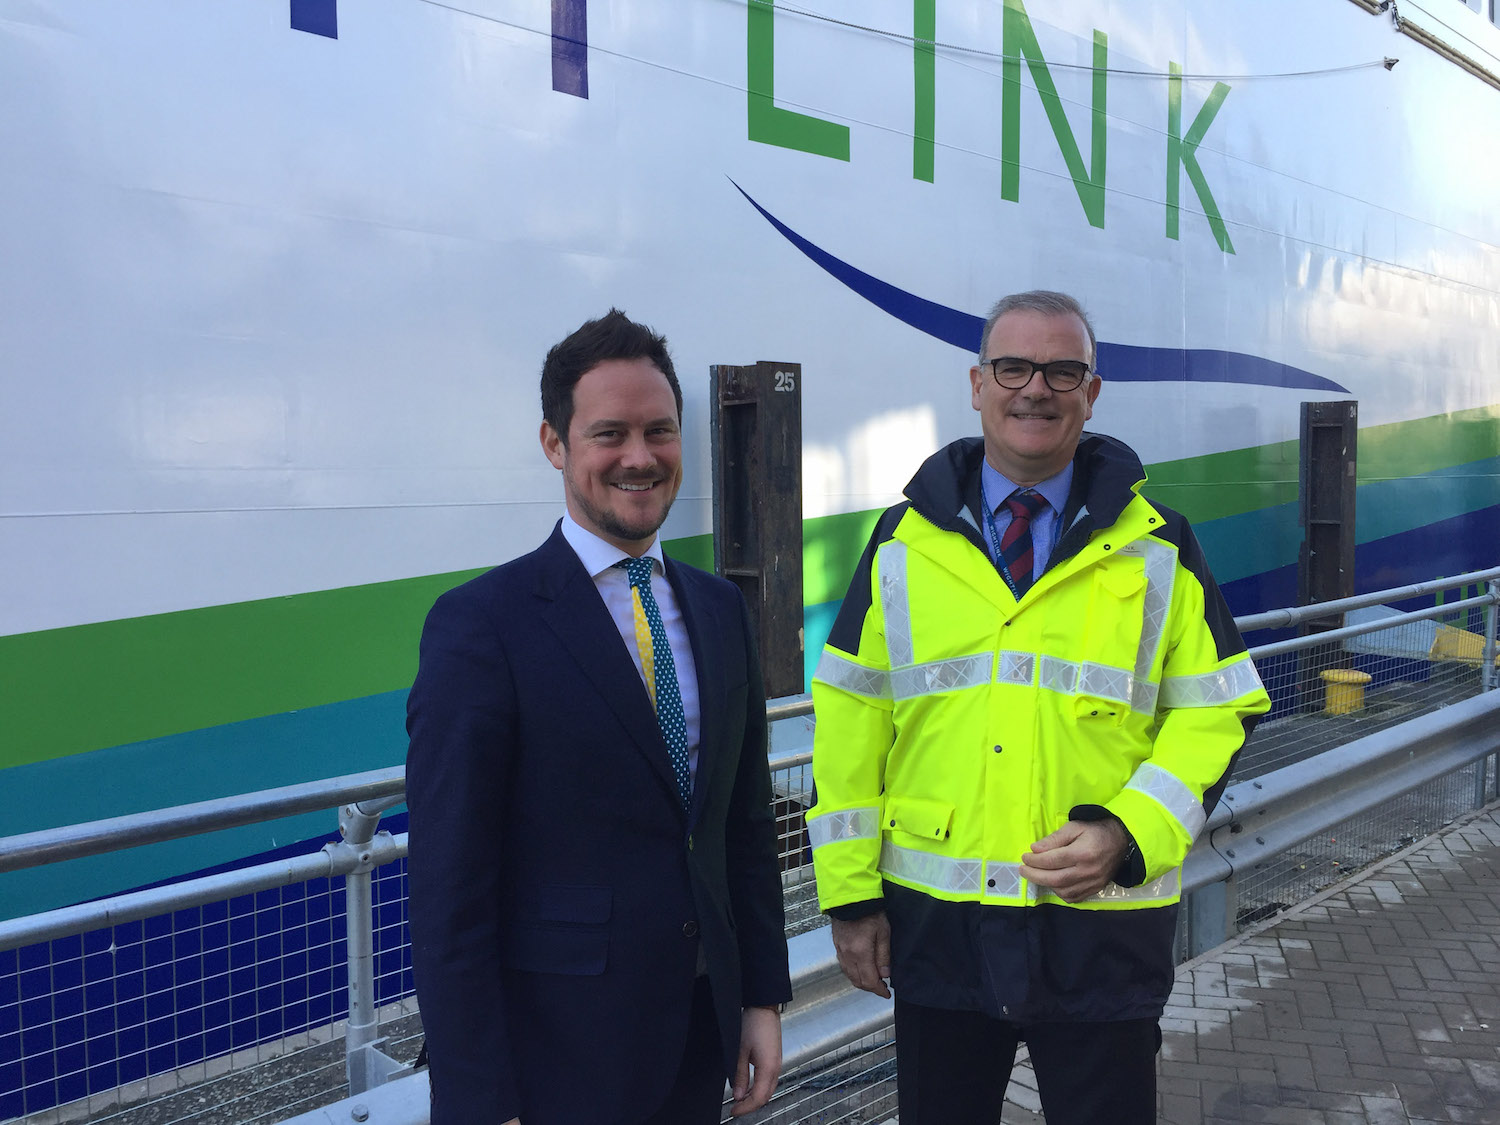 Stephen Morgan MP with Wightlink CEO Keith Greenfield